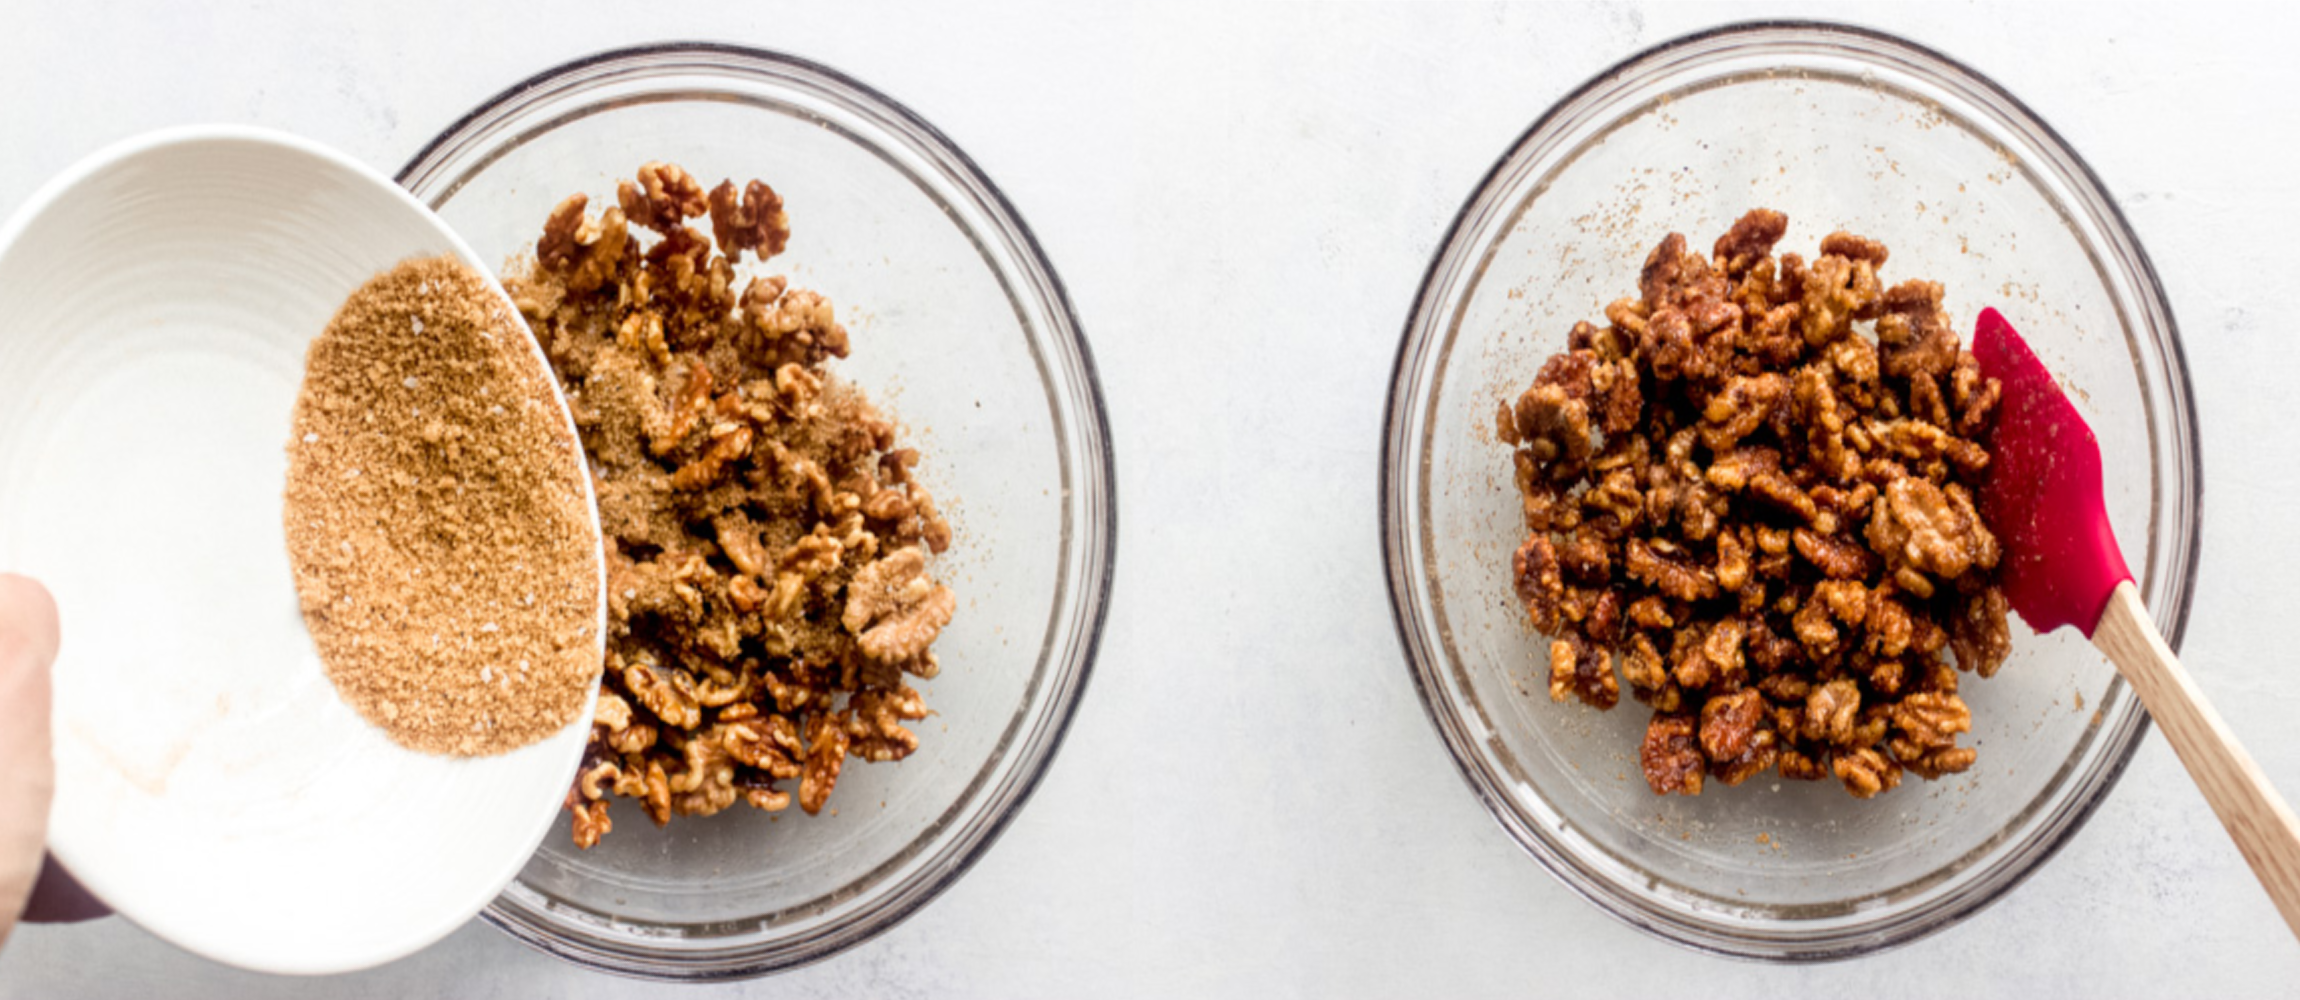 walnuts with spice mixture in a bowl